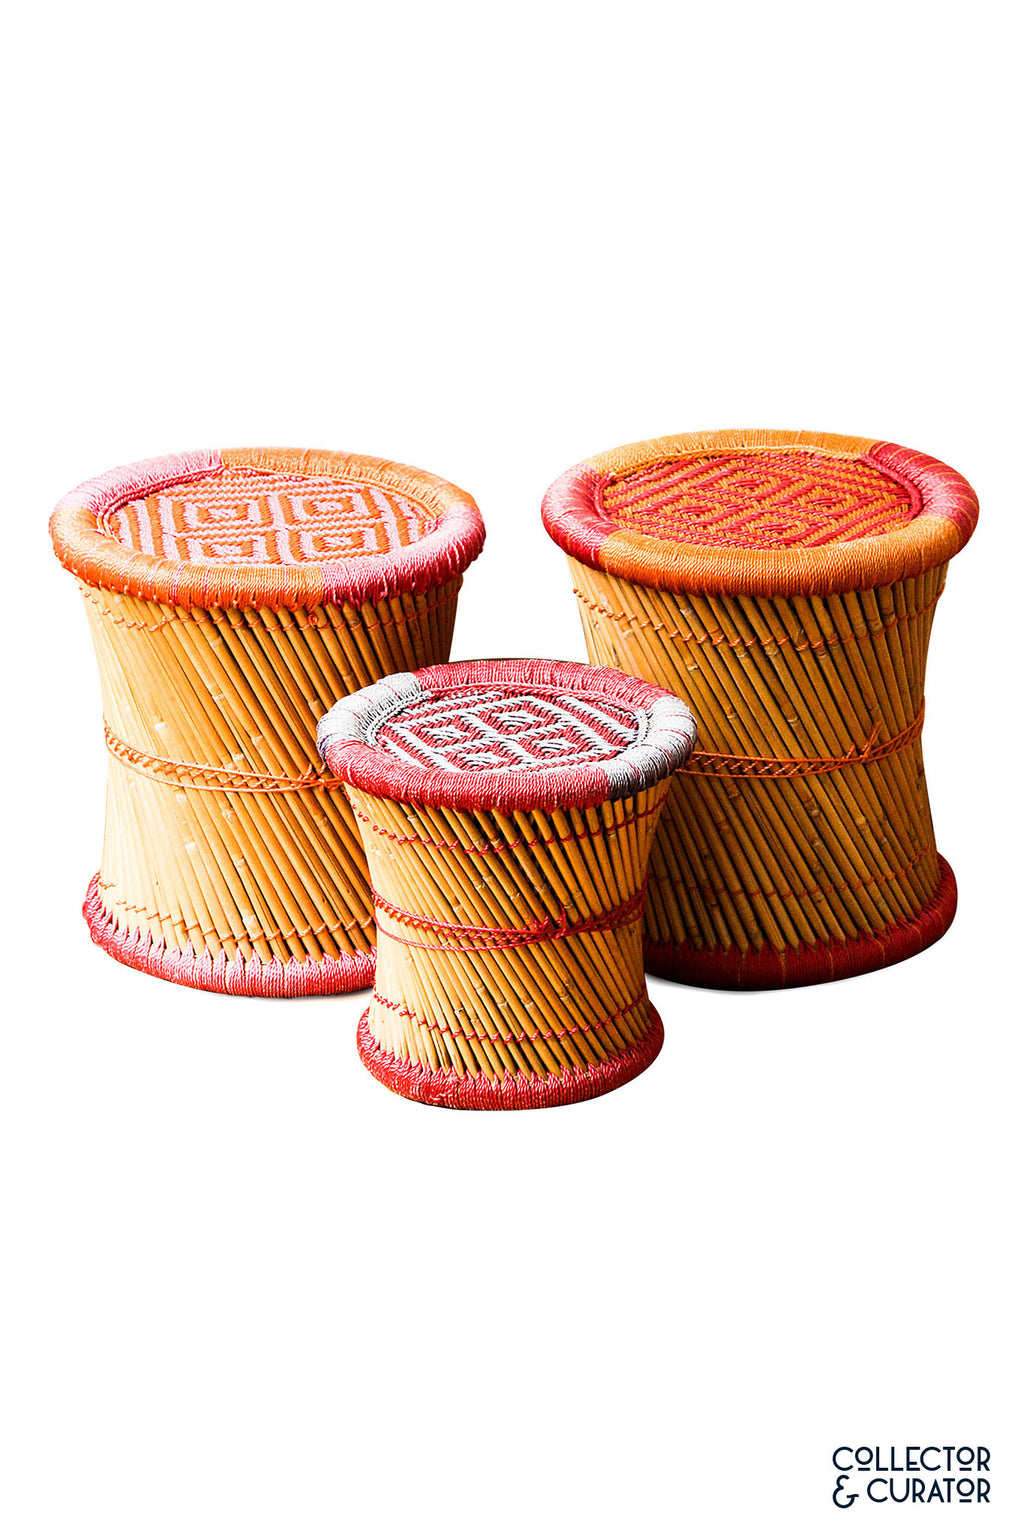 Colorful Rattan Stools - Collector & Curator